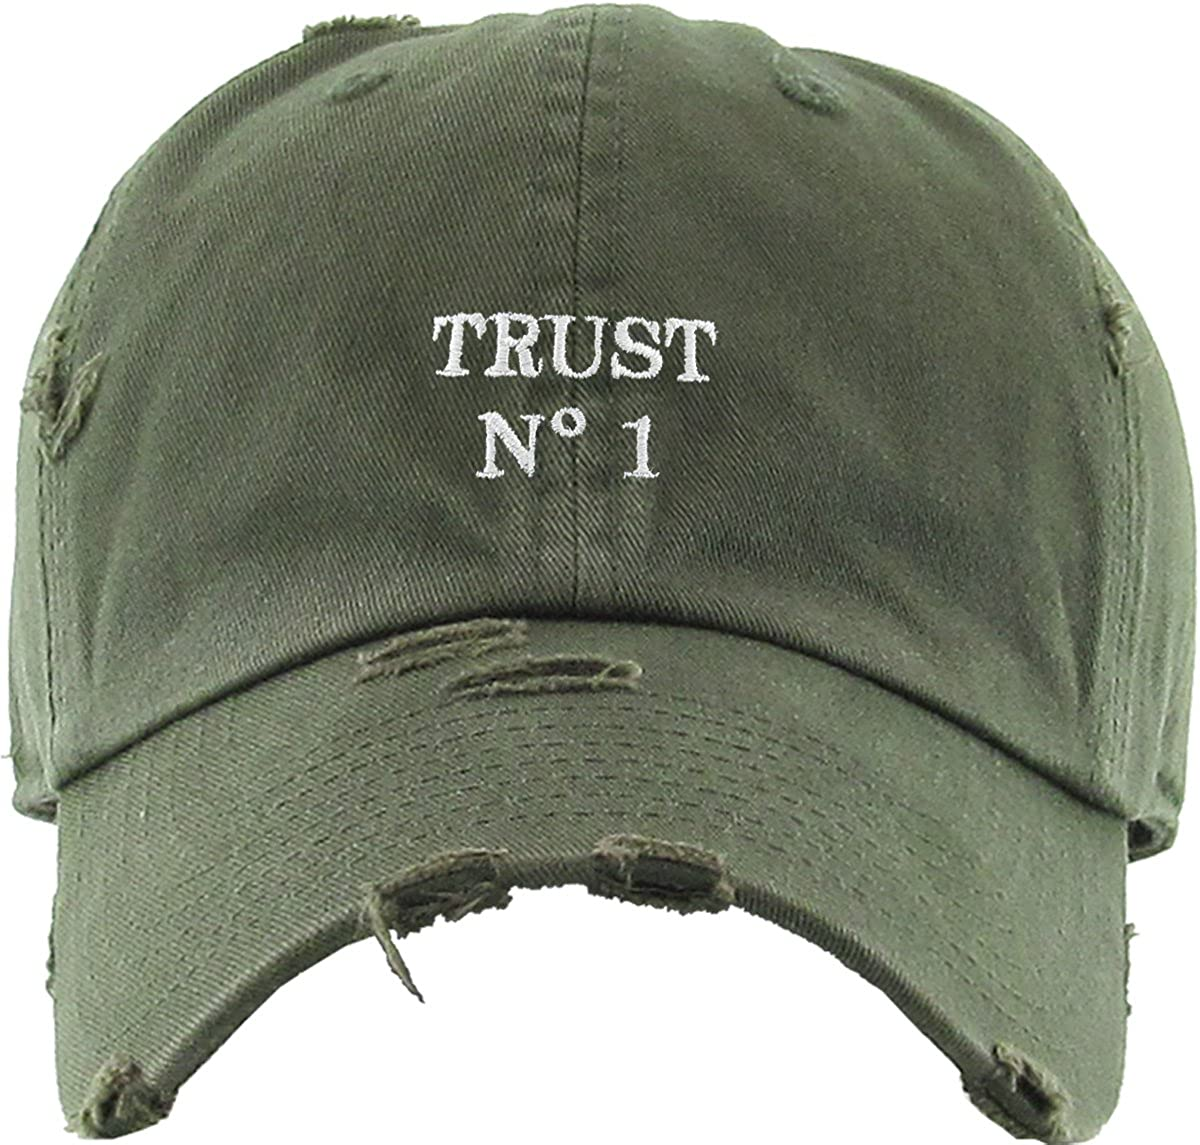 KBSV-055 OLV Trust No1 Vintage Distressed Dad Hat Baseball Cap Polo Style   Amazon.ca  Sports   Outdoors e126ef792472